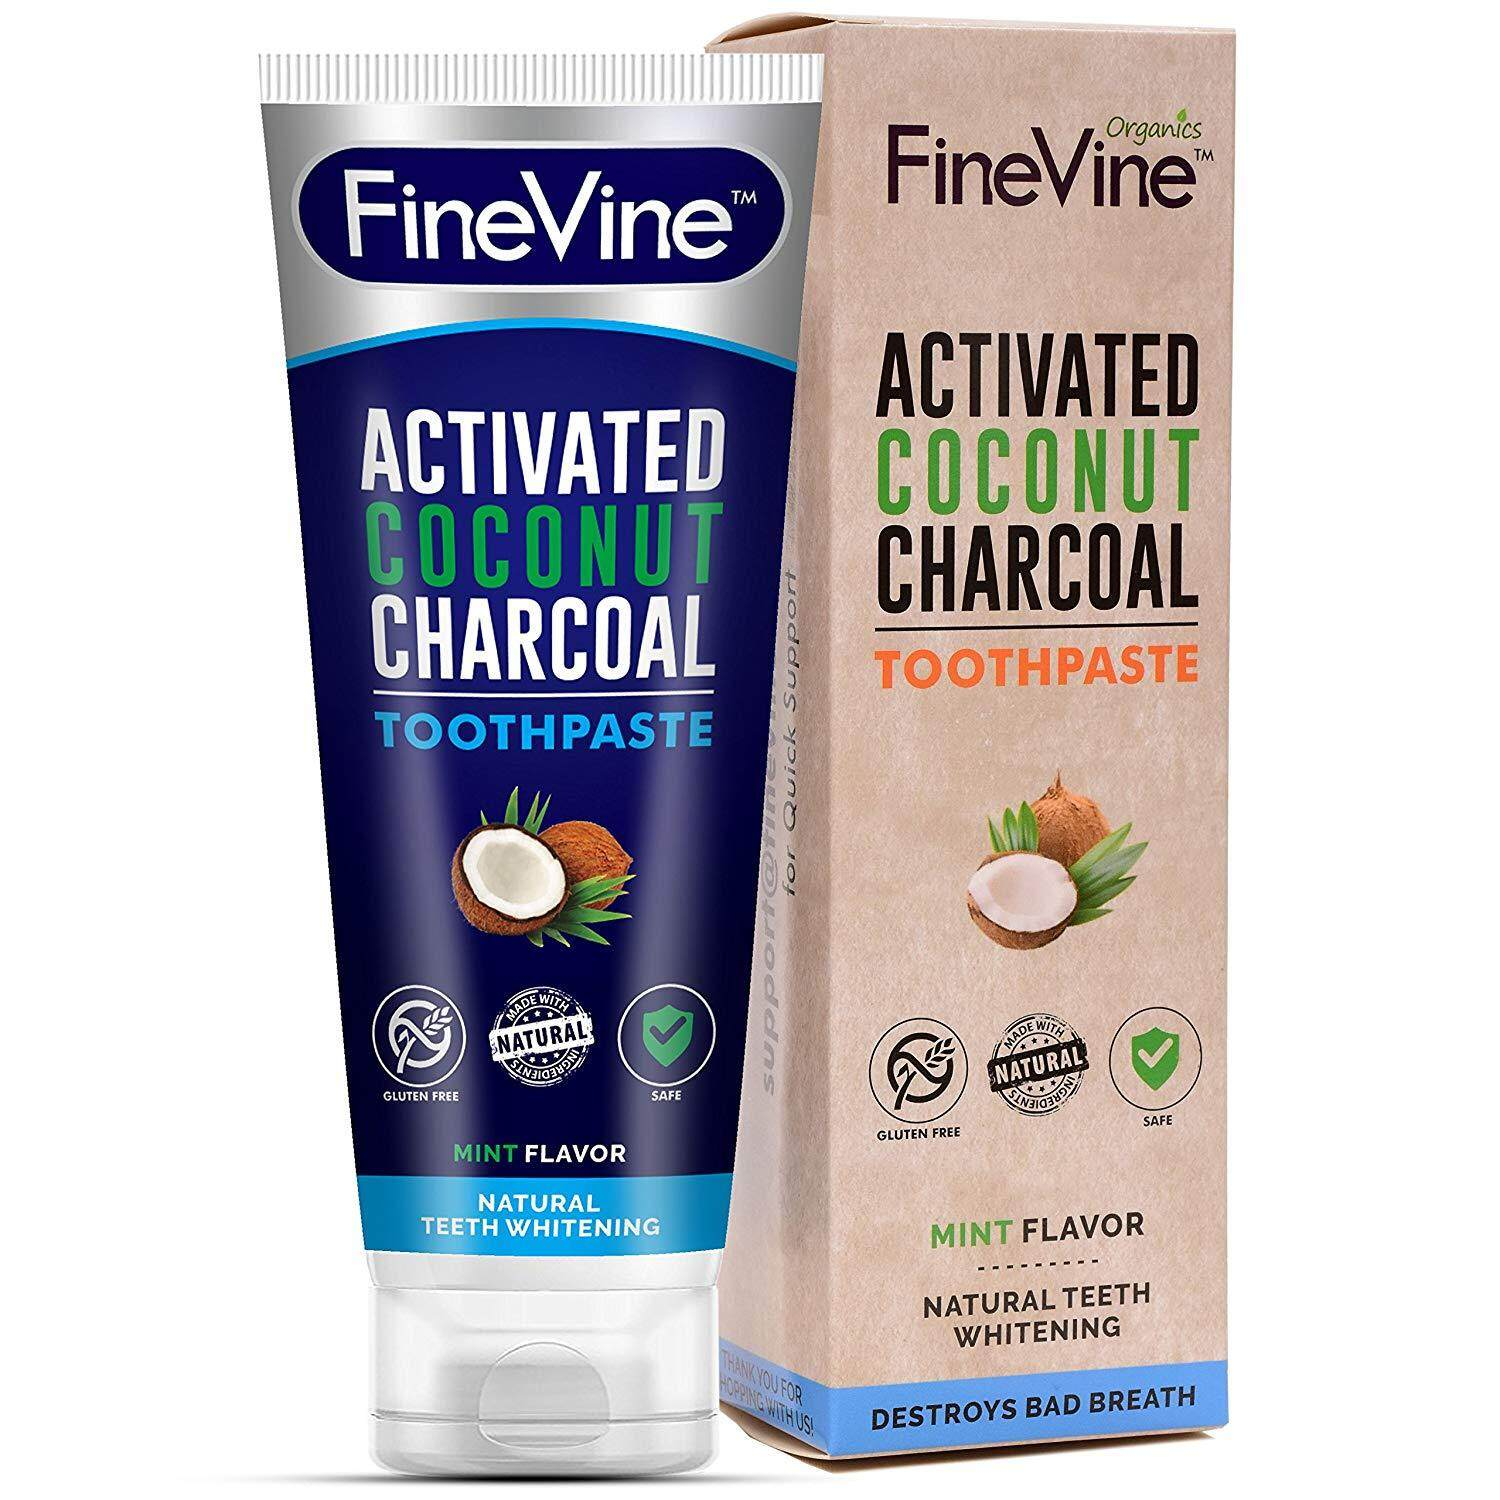 [ iiMONO ] Charcoal Teeth Whitening Toothpaste - Made in USA - WHITENS TEETH NATURALLY and REMOVES BAD BREATH - Best Natural Vegan Organic Toothpaste